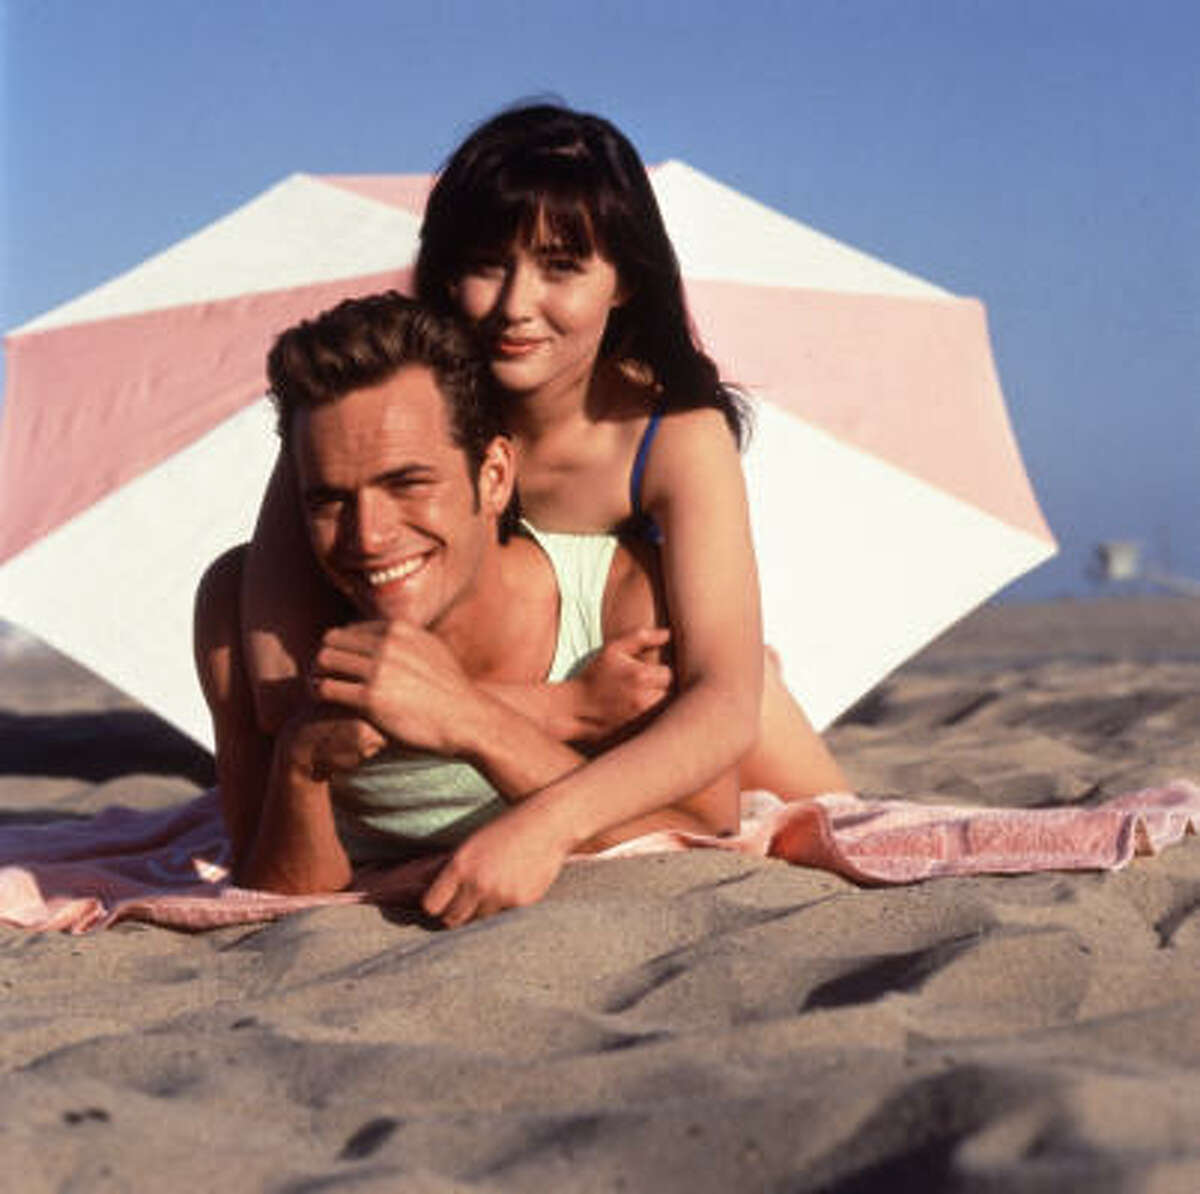 Luke Perry and Shannen Doherty played couple Dyan McKay and Brenda Walsh.